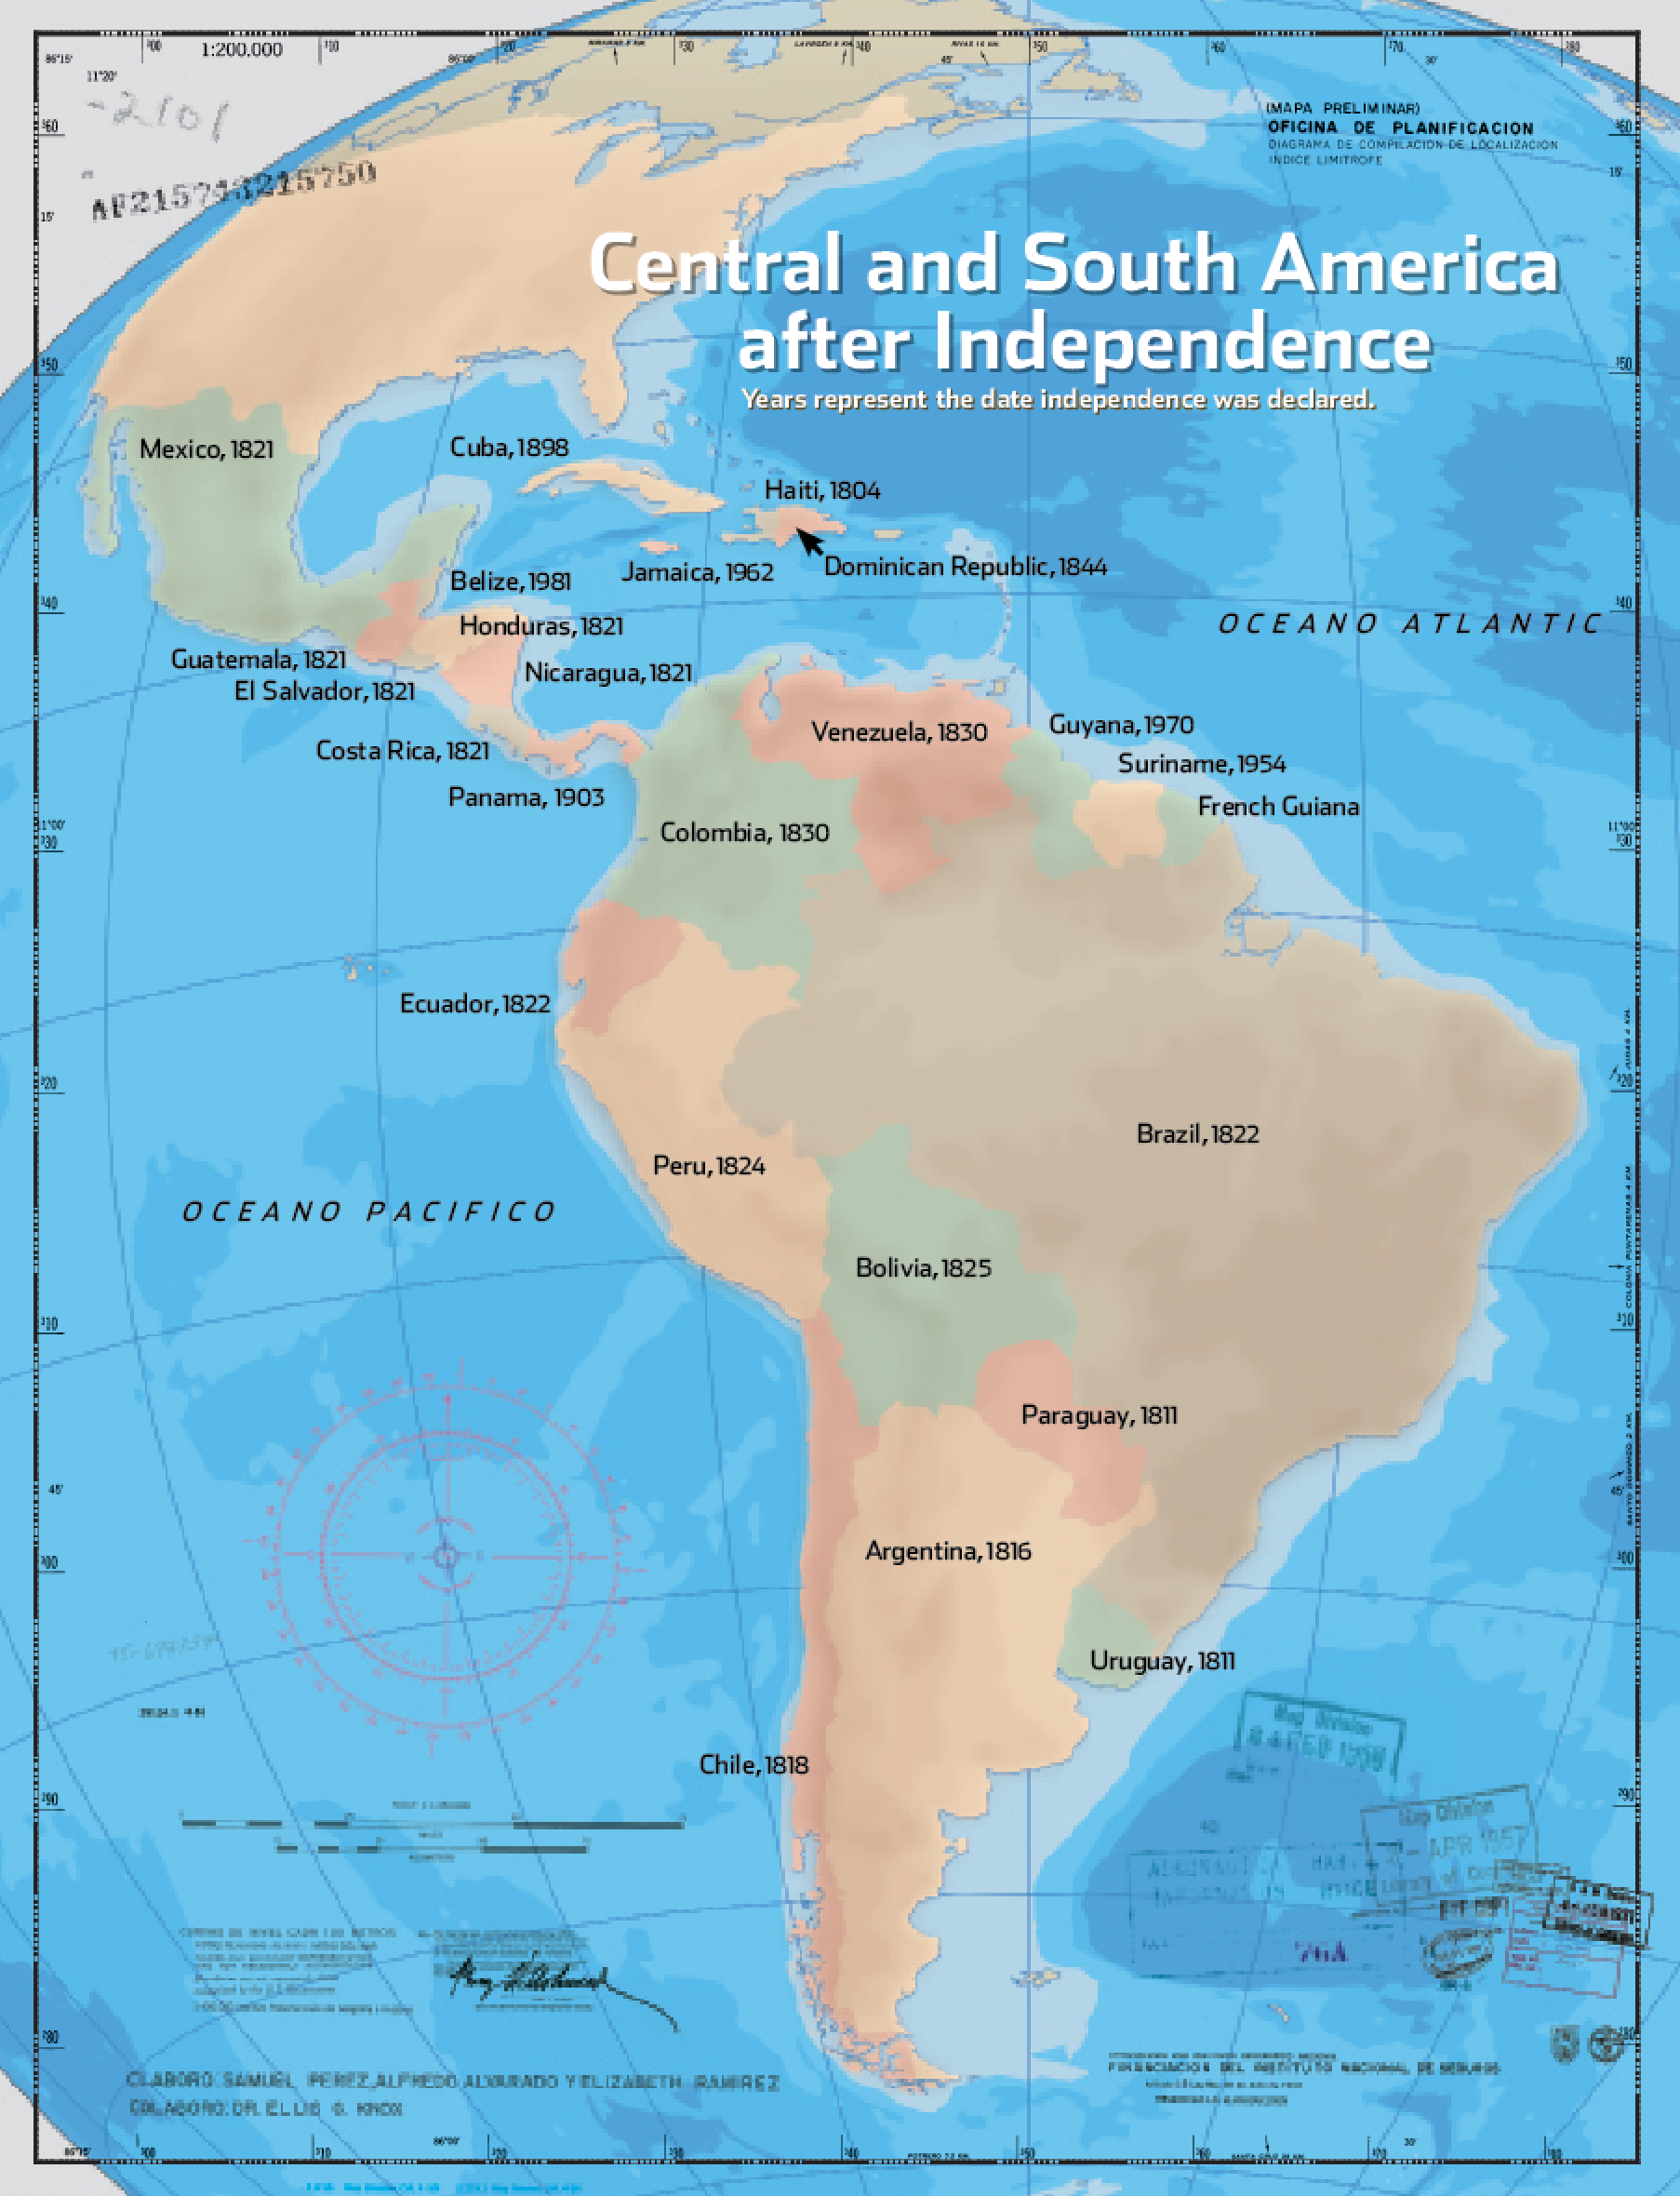 Central and South America 20th century map | Christian History Magazine